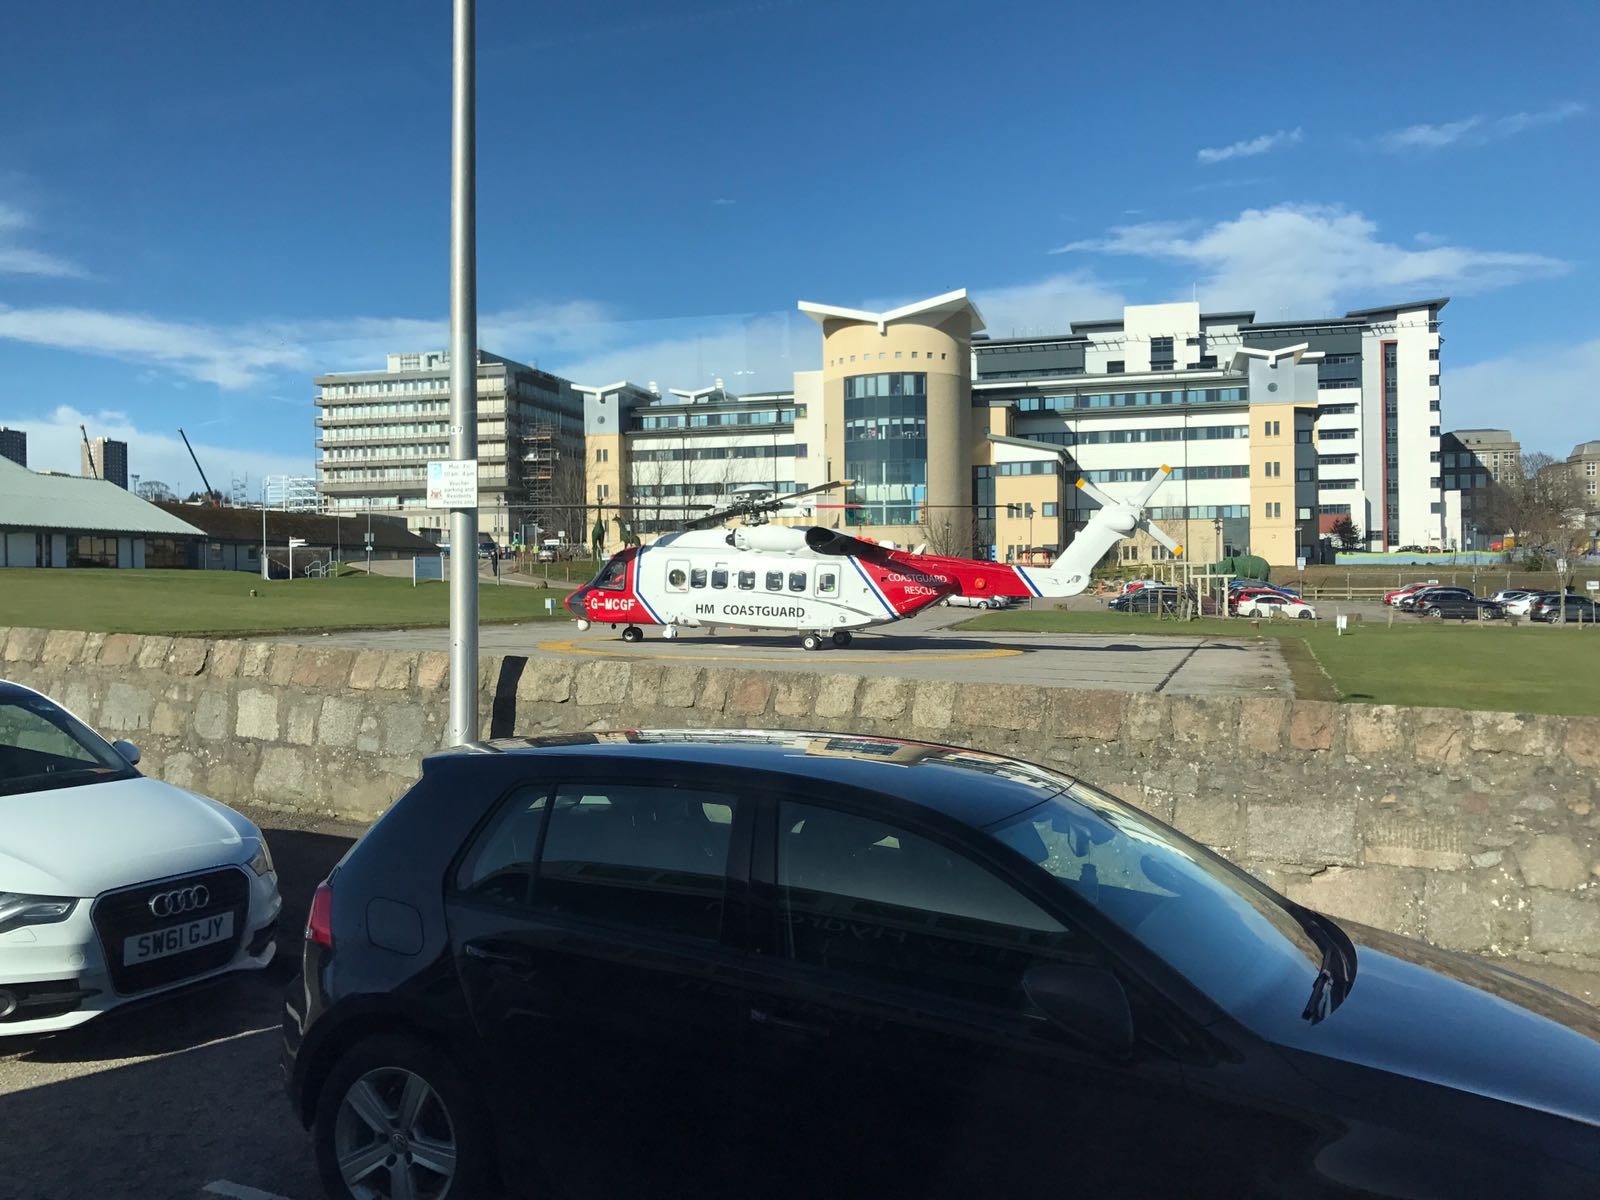 The Coastguard helicopter at ARI today